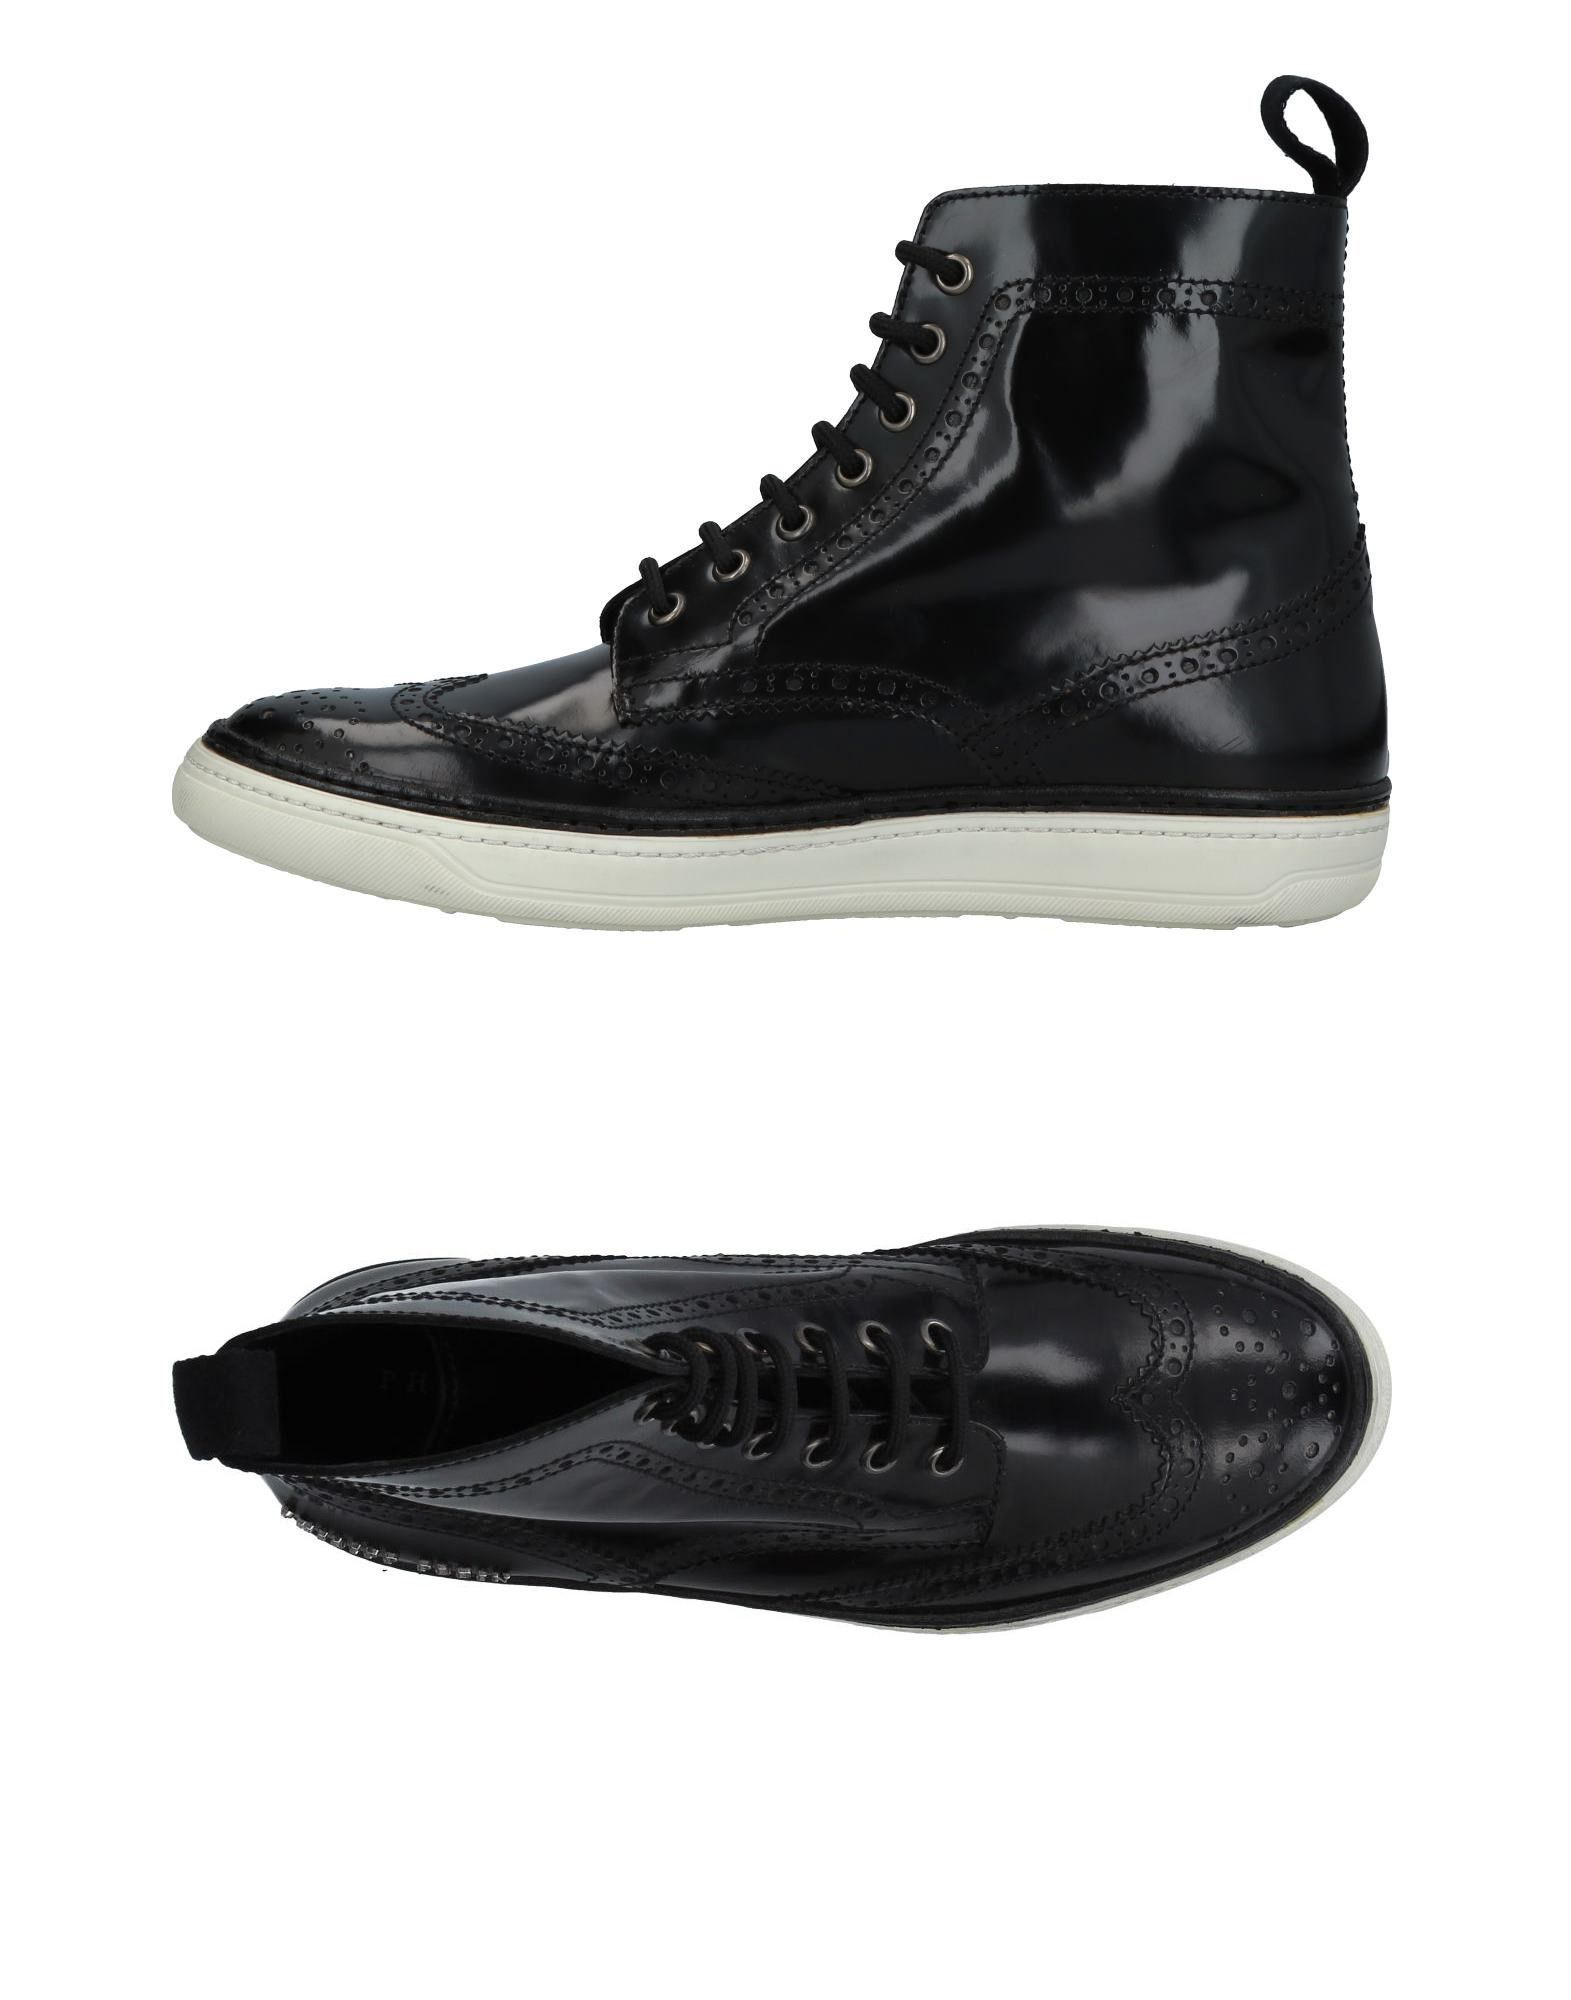 9b1cdbdec8 Anyway these sneakers a bit shiny with polished leather still look great  and make the cut for the black and white sneaker to own. You can definitely  dress ...